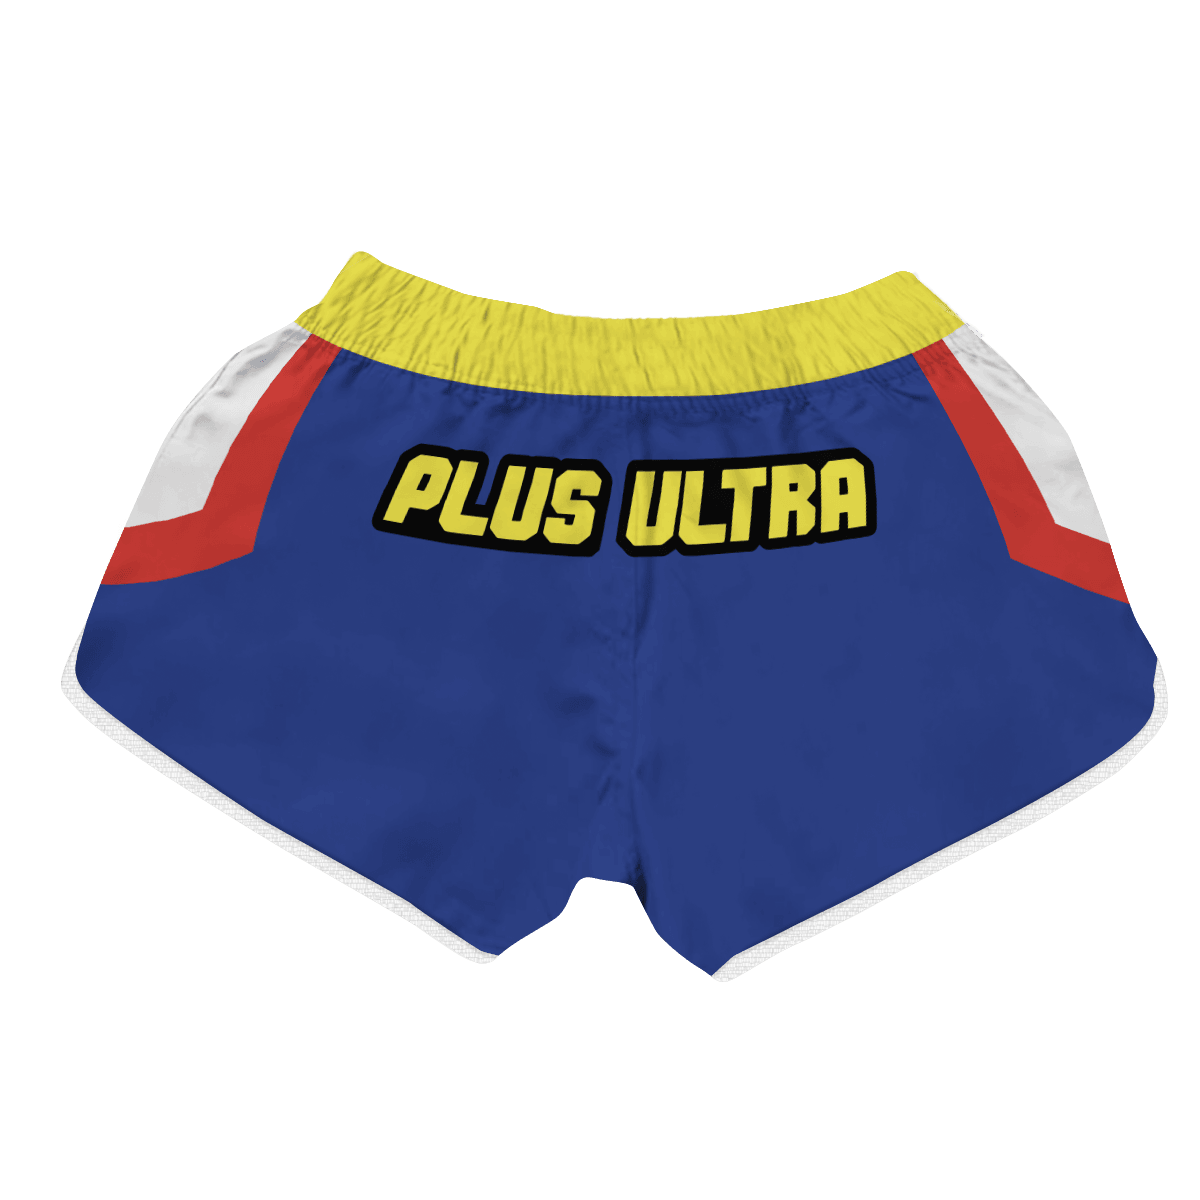 M Official Anime Swimsuit Merch